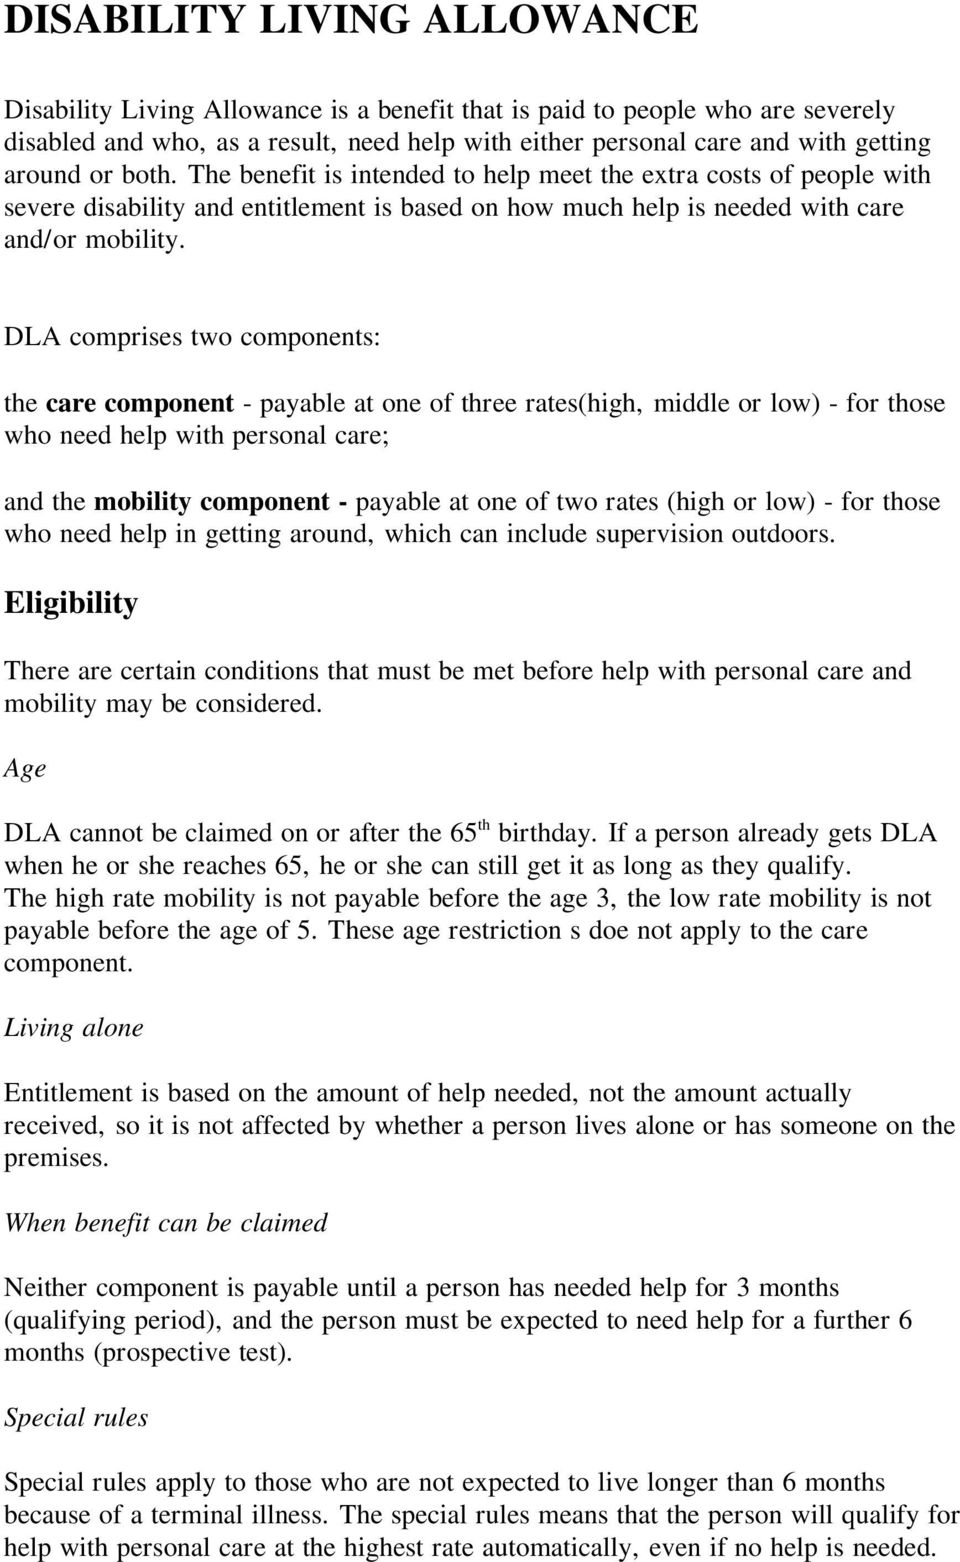 DLA comprises two components: the care component - payable at one of three rates(high, middle low) - f those who need help with personal care; and the mobility component - payable at one of two rates